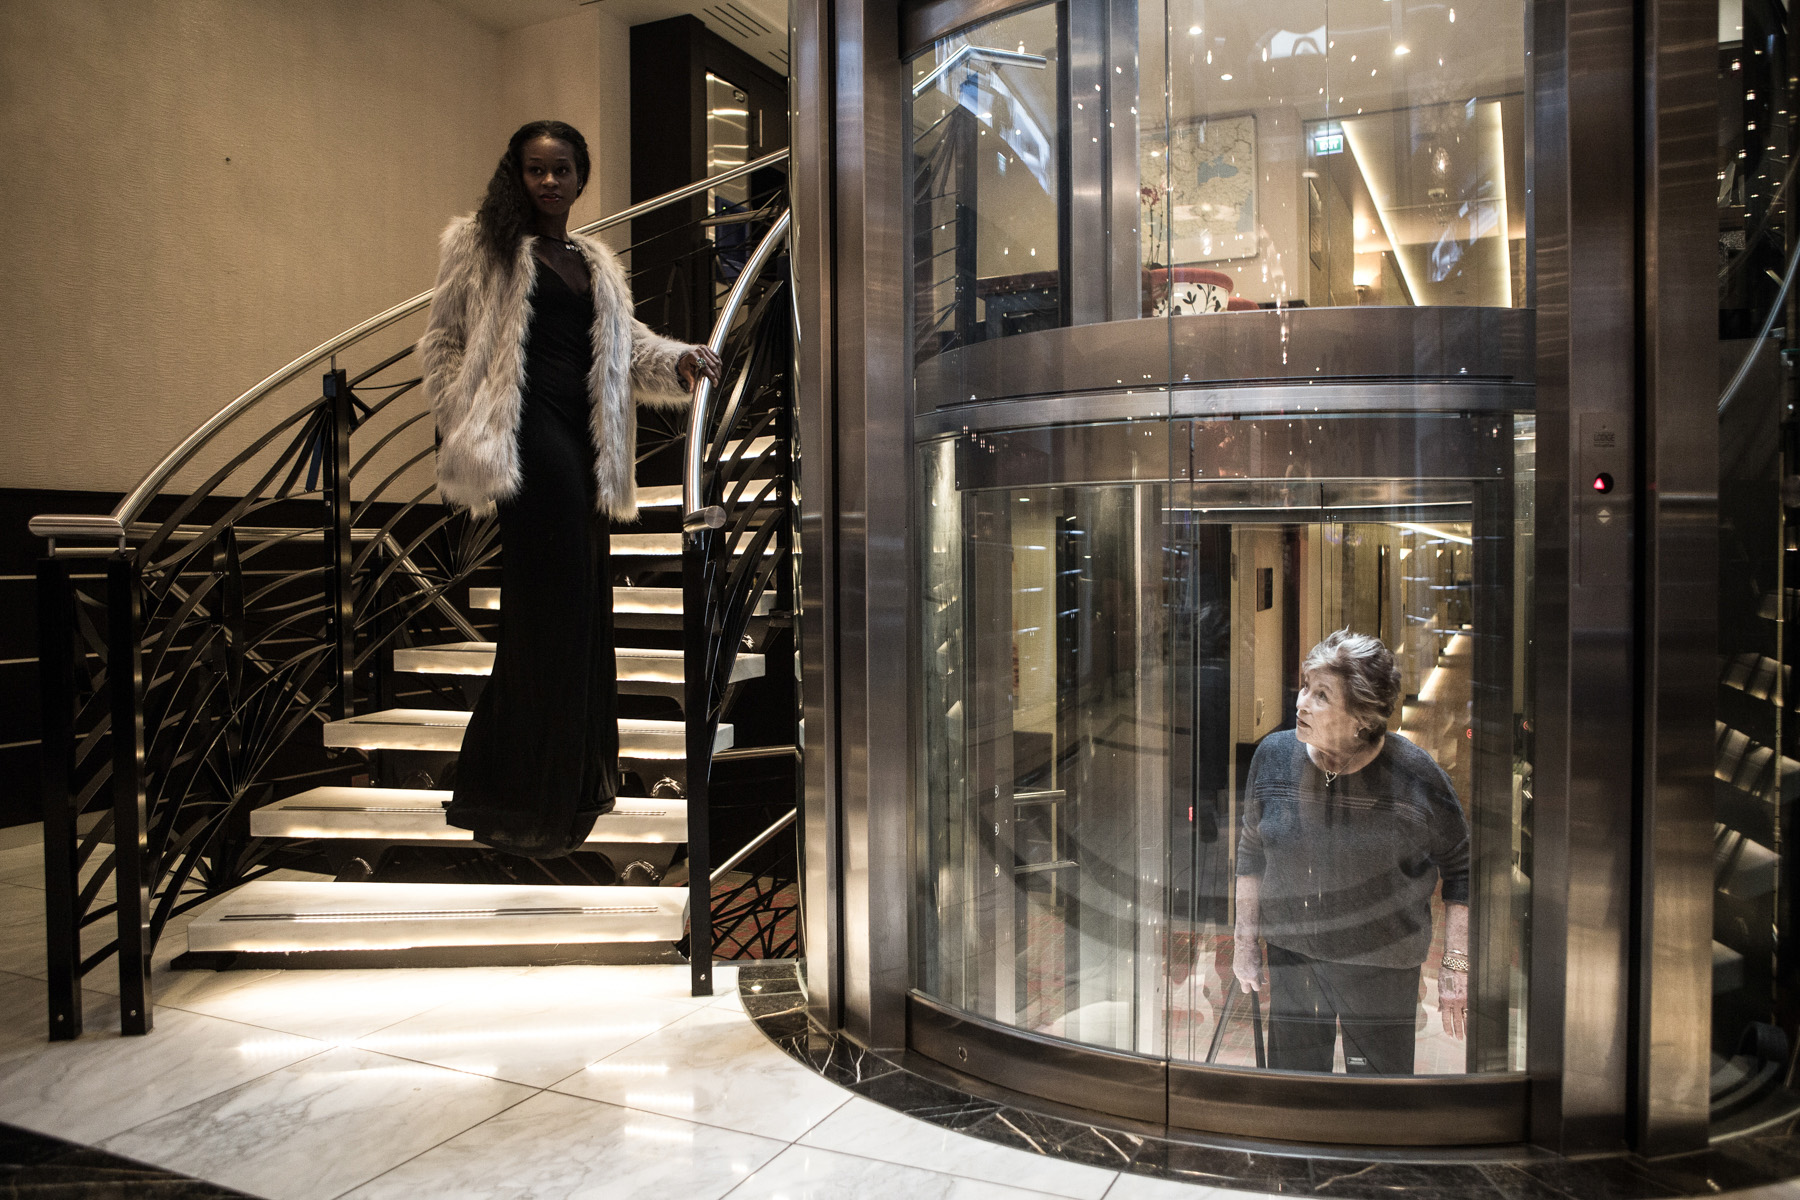 A passenger of the Danube cruise is watching from inside an elevator while another one walks up the stairs inside the cruise ship. For two weeks mainly North American tourists were traveling up the Danube to visit sites of Jewish heritage in Europe.